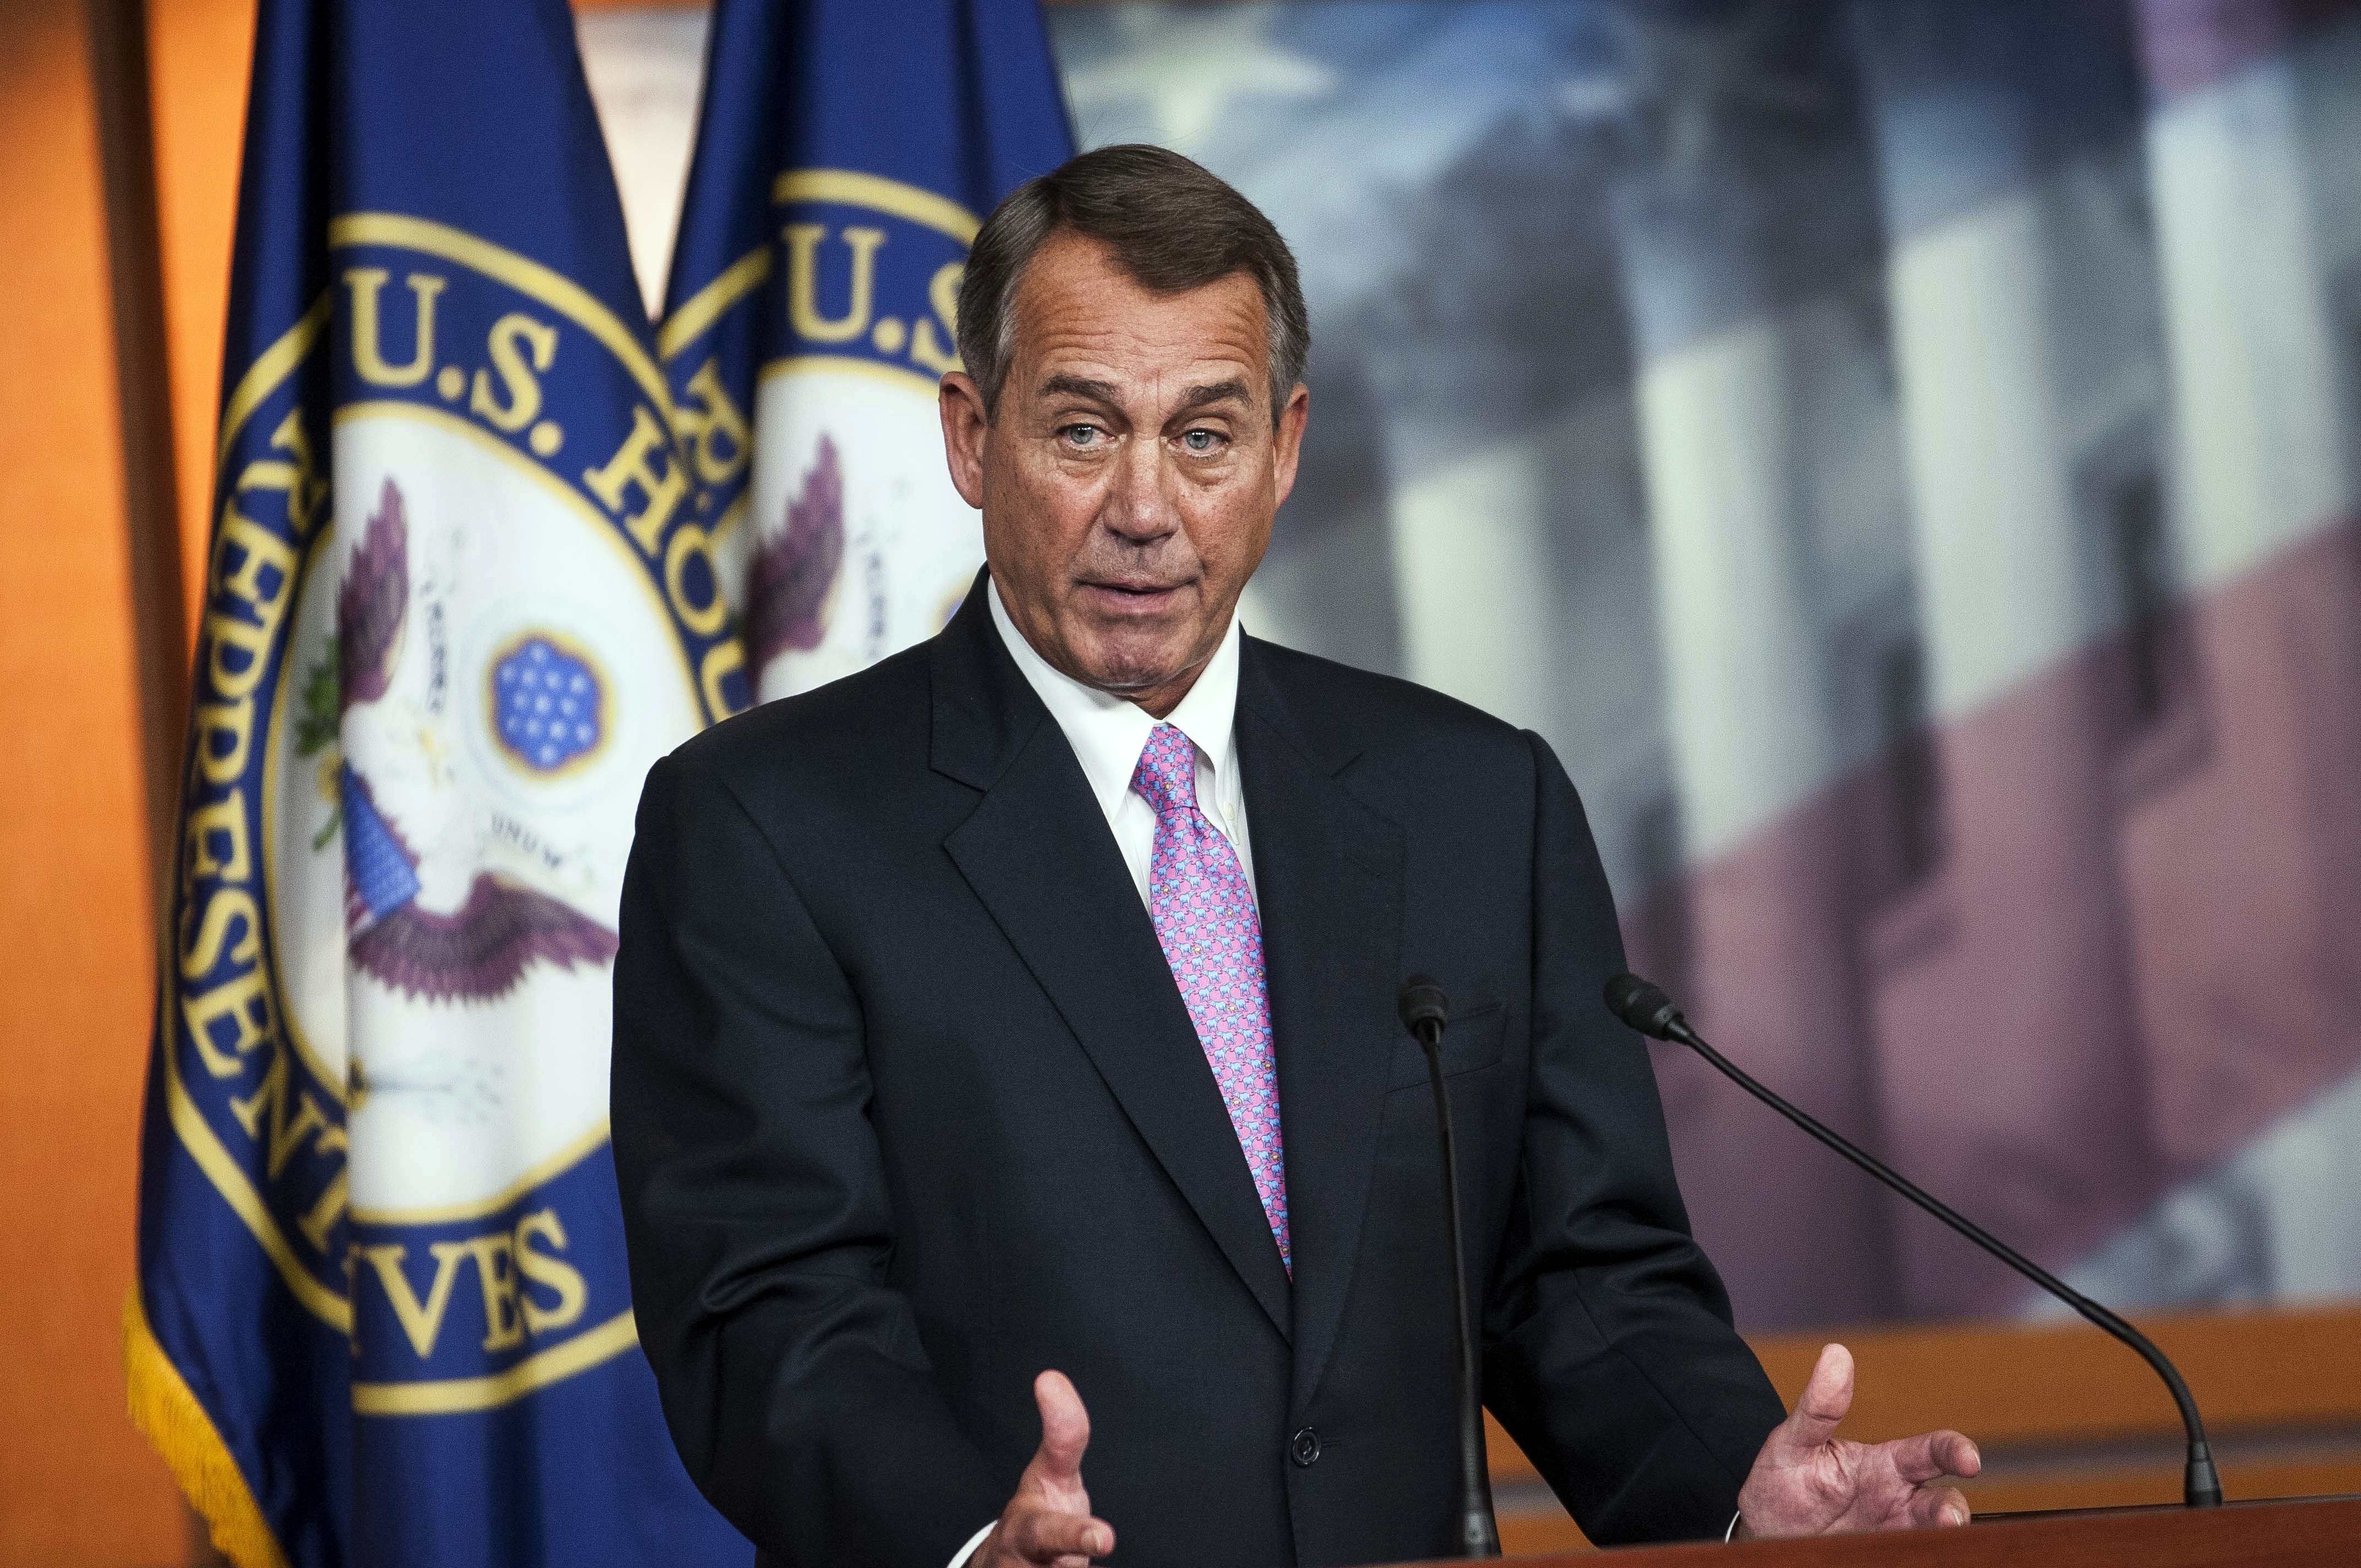 Speaker of the House John Boehner says his health care premiums will nearly double under Obamacare.